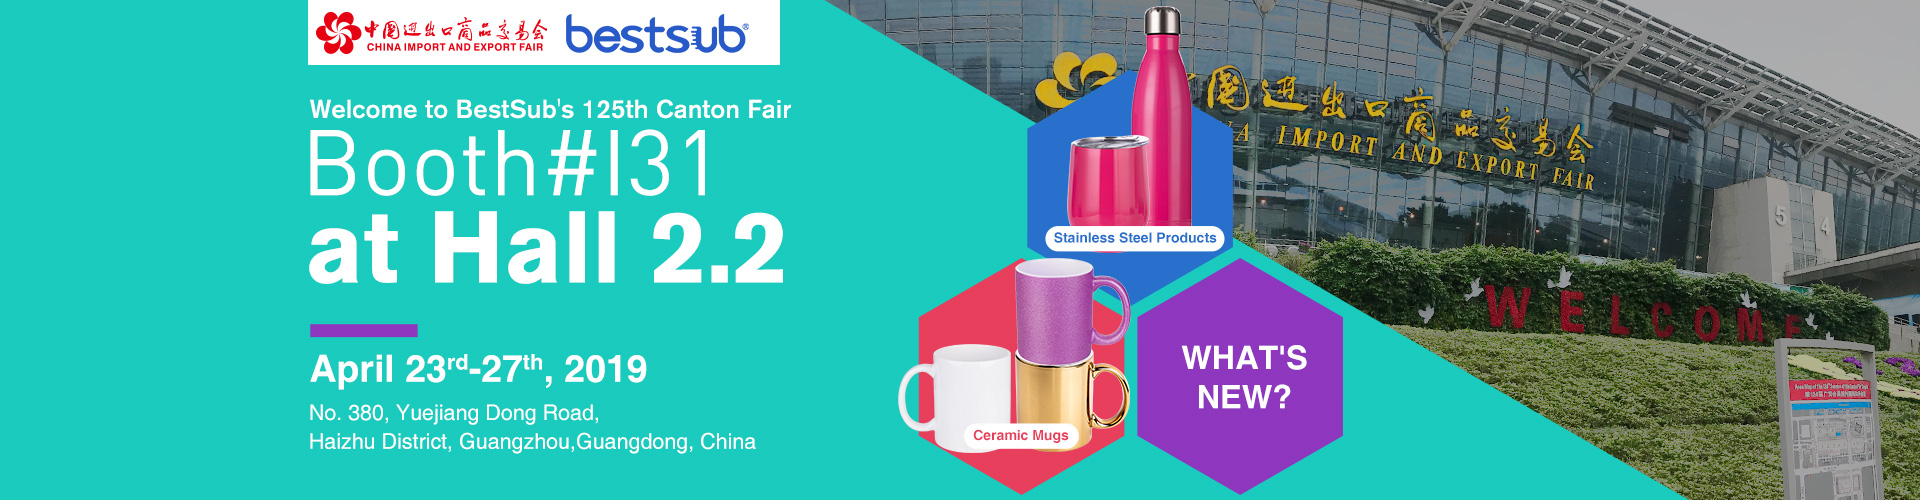 2019-3-25_welcome_to_bestsub-s_125th_canton_fair_new_web